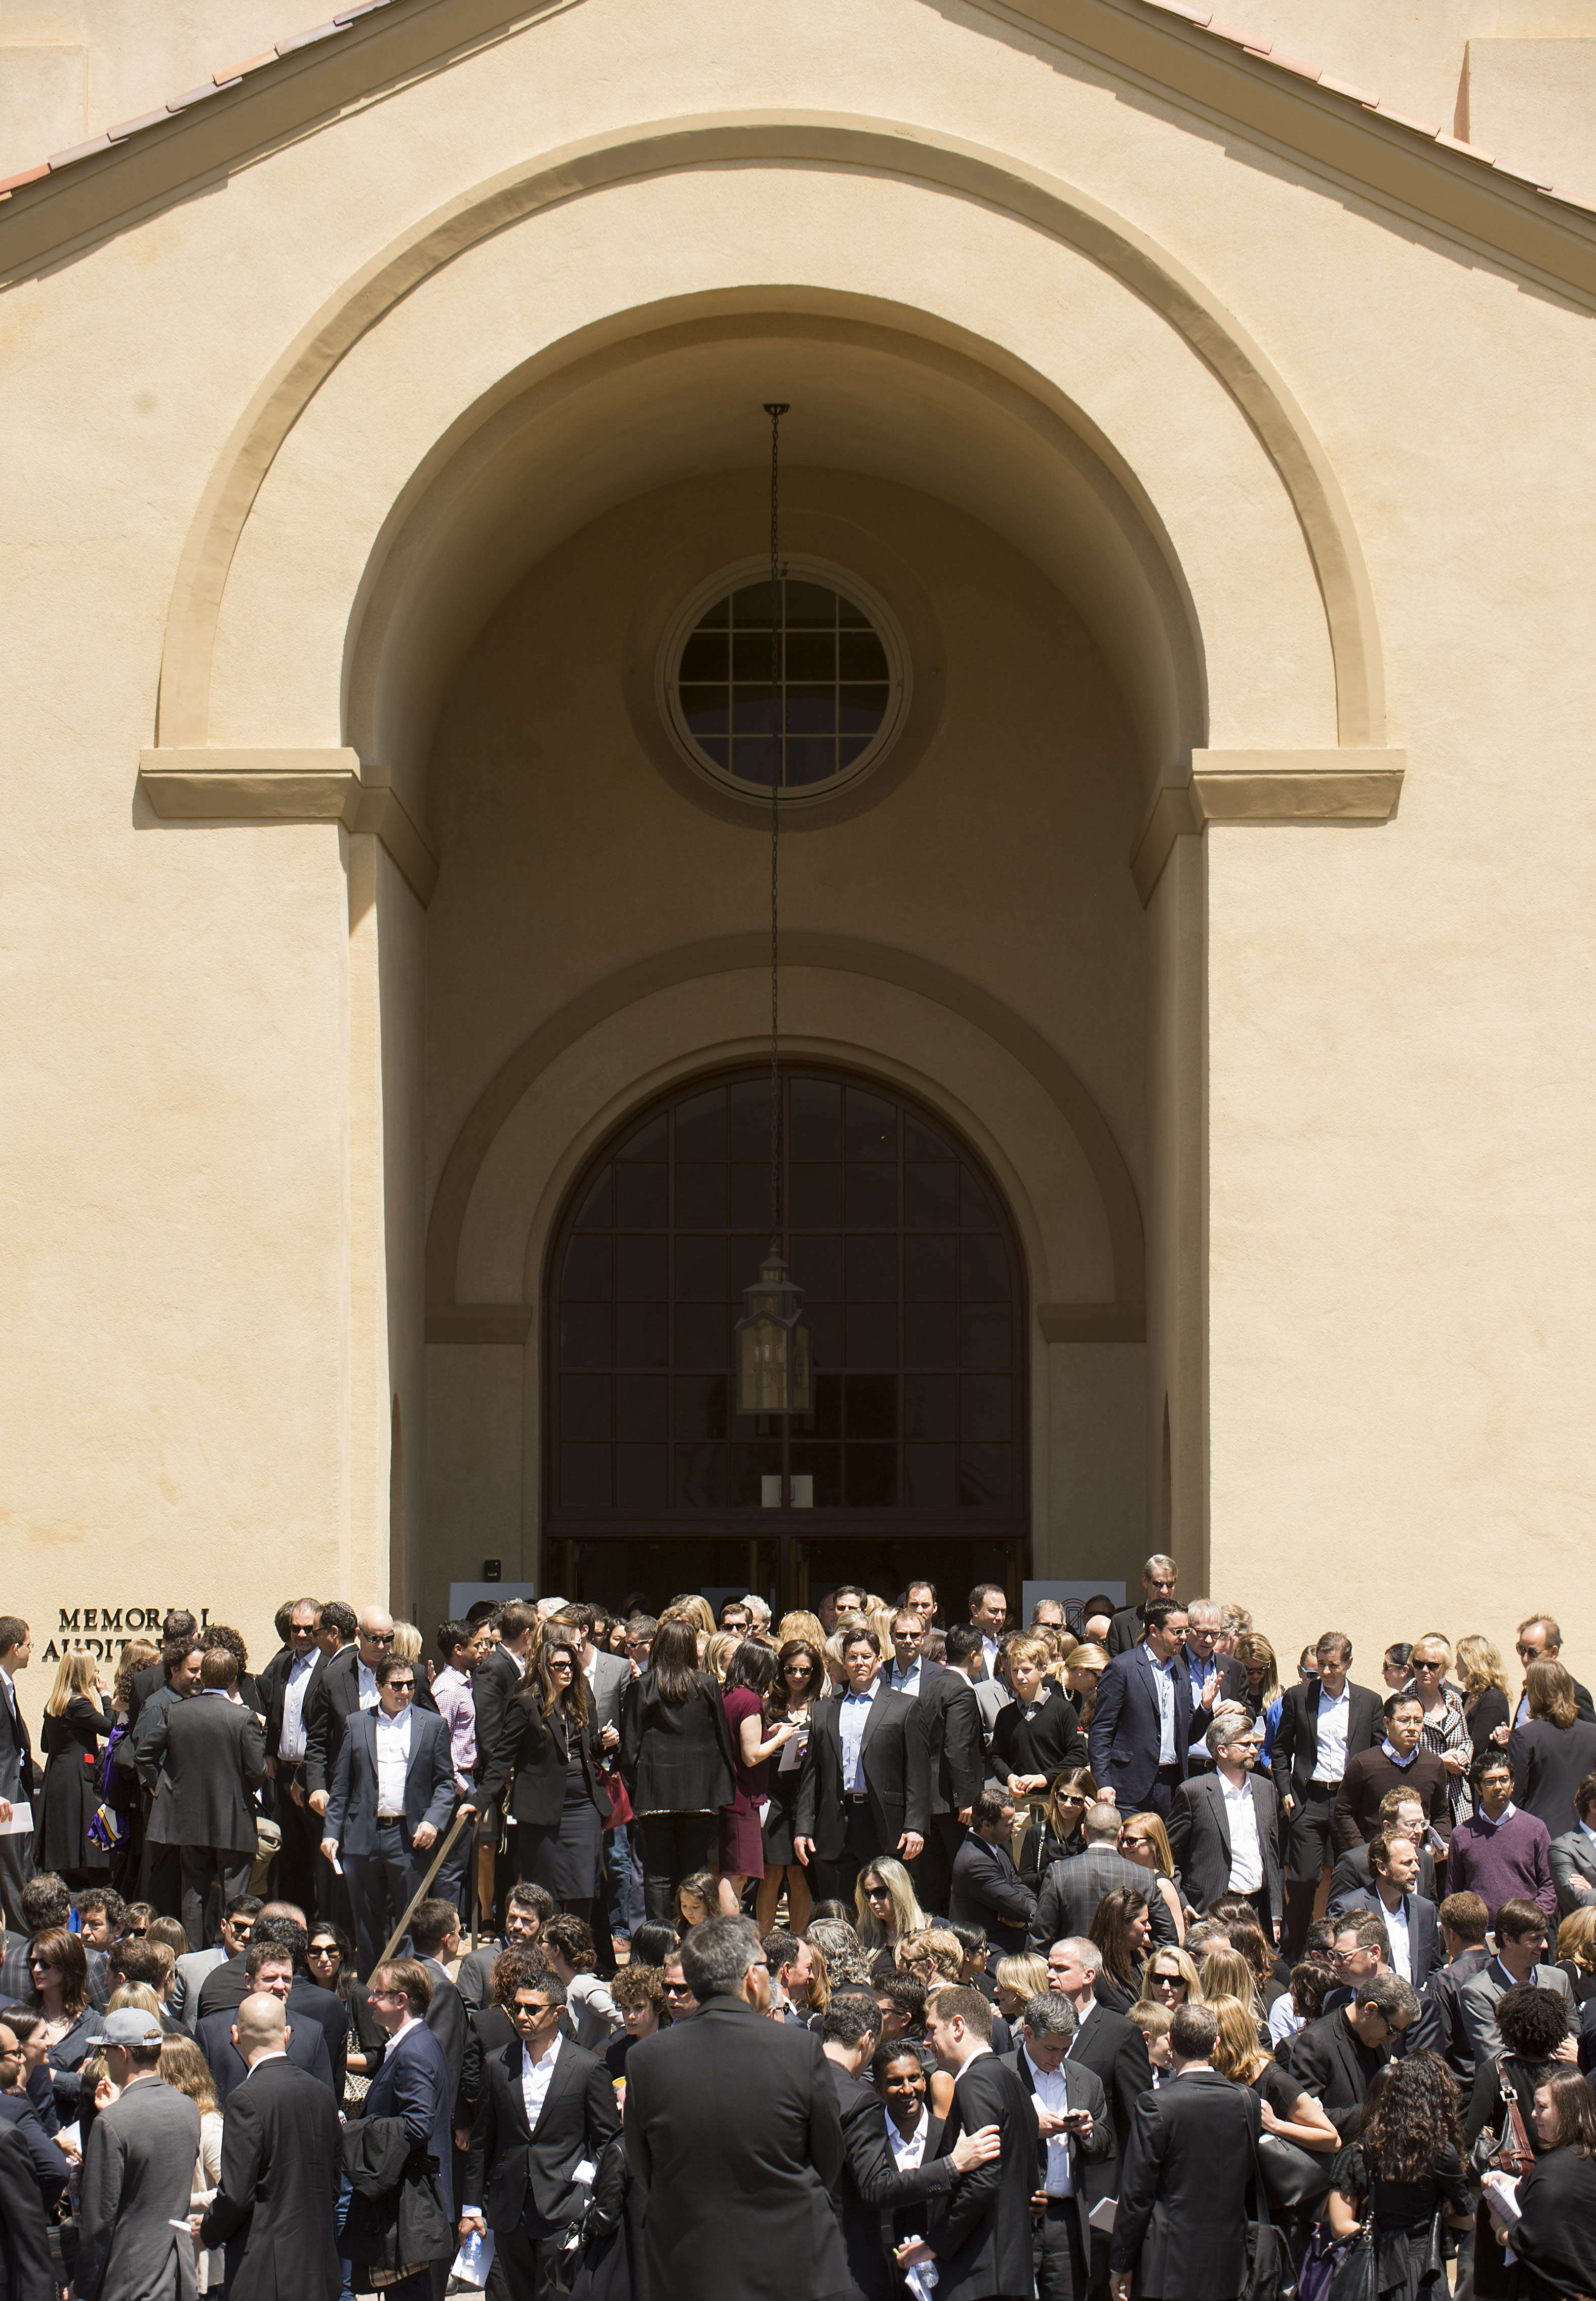 Social media and mourning: Funerals may be the last frontier